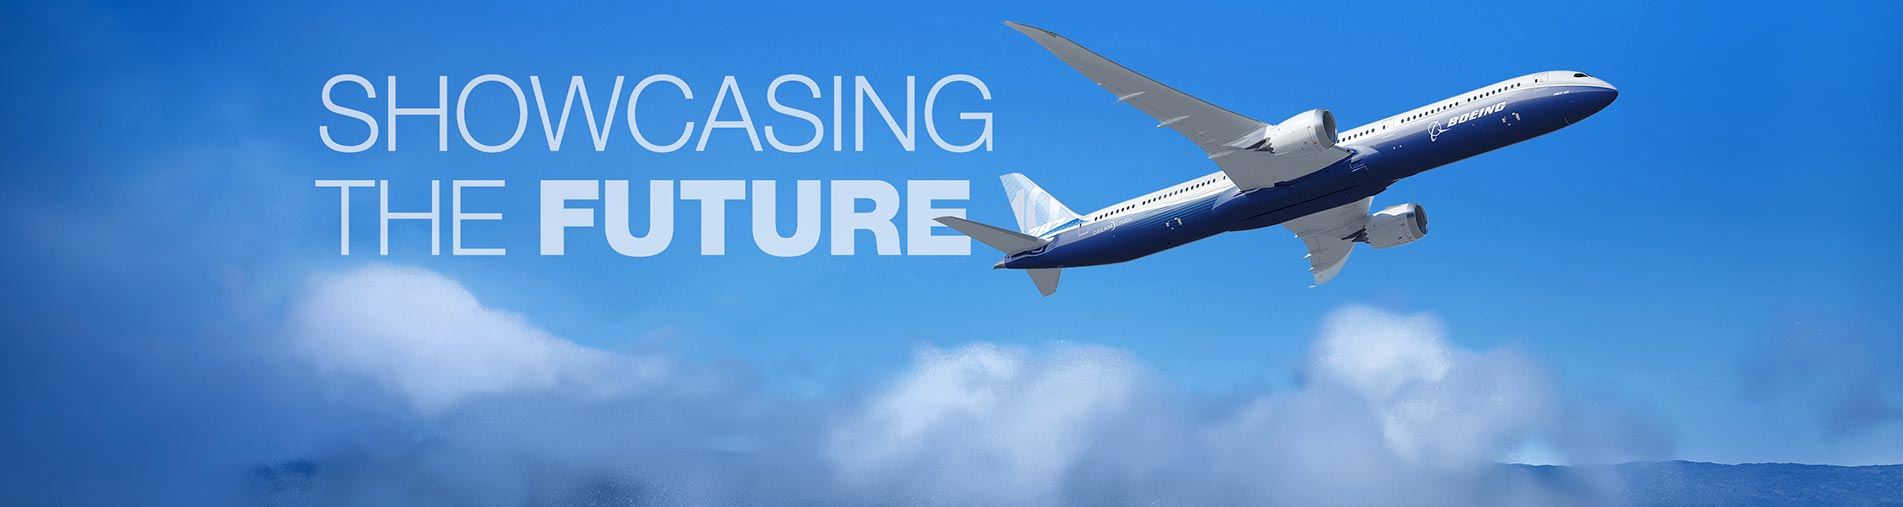 Boeing: Boeing India - Home